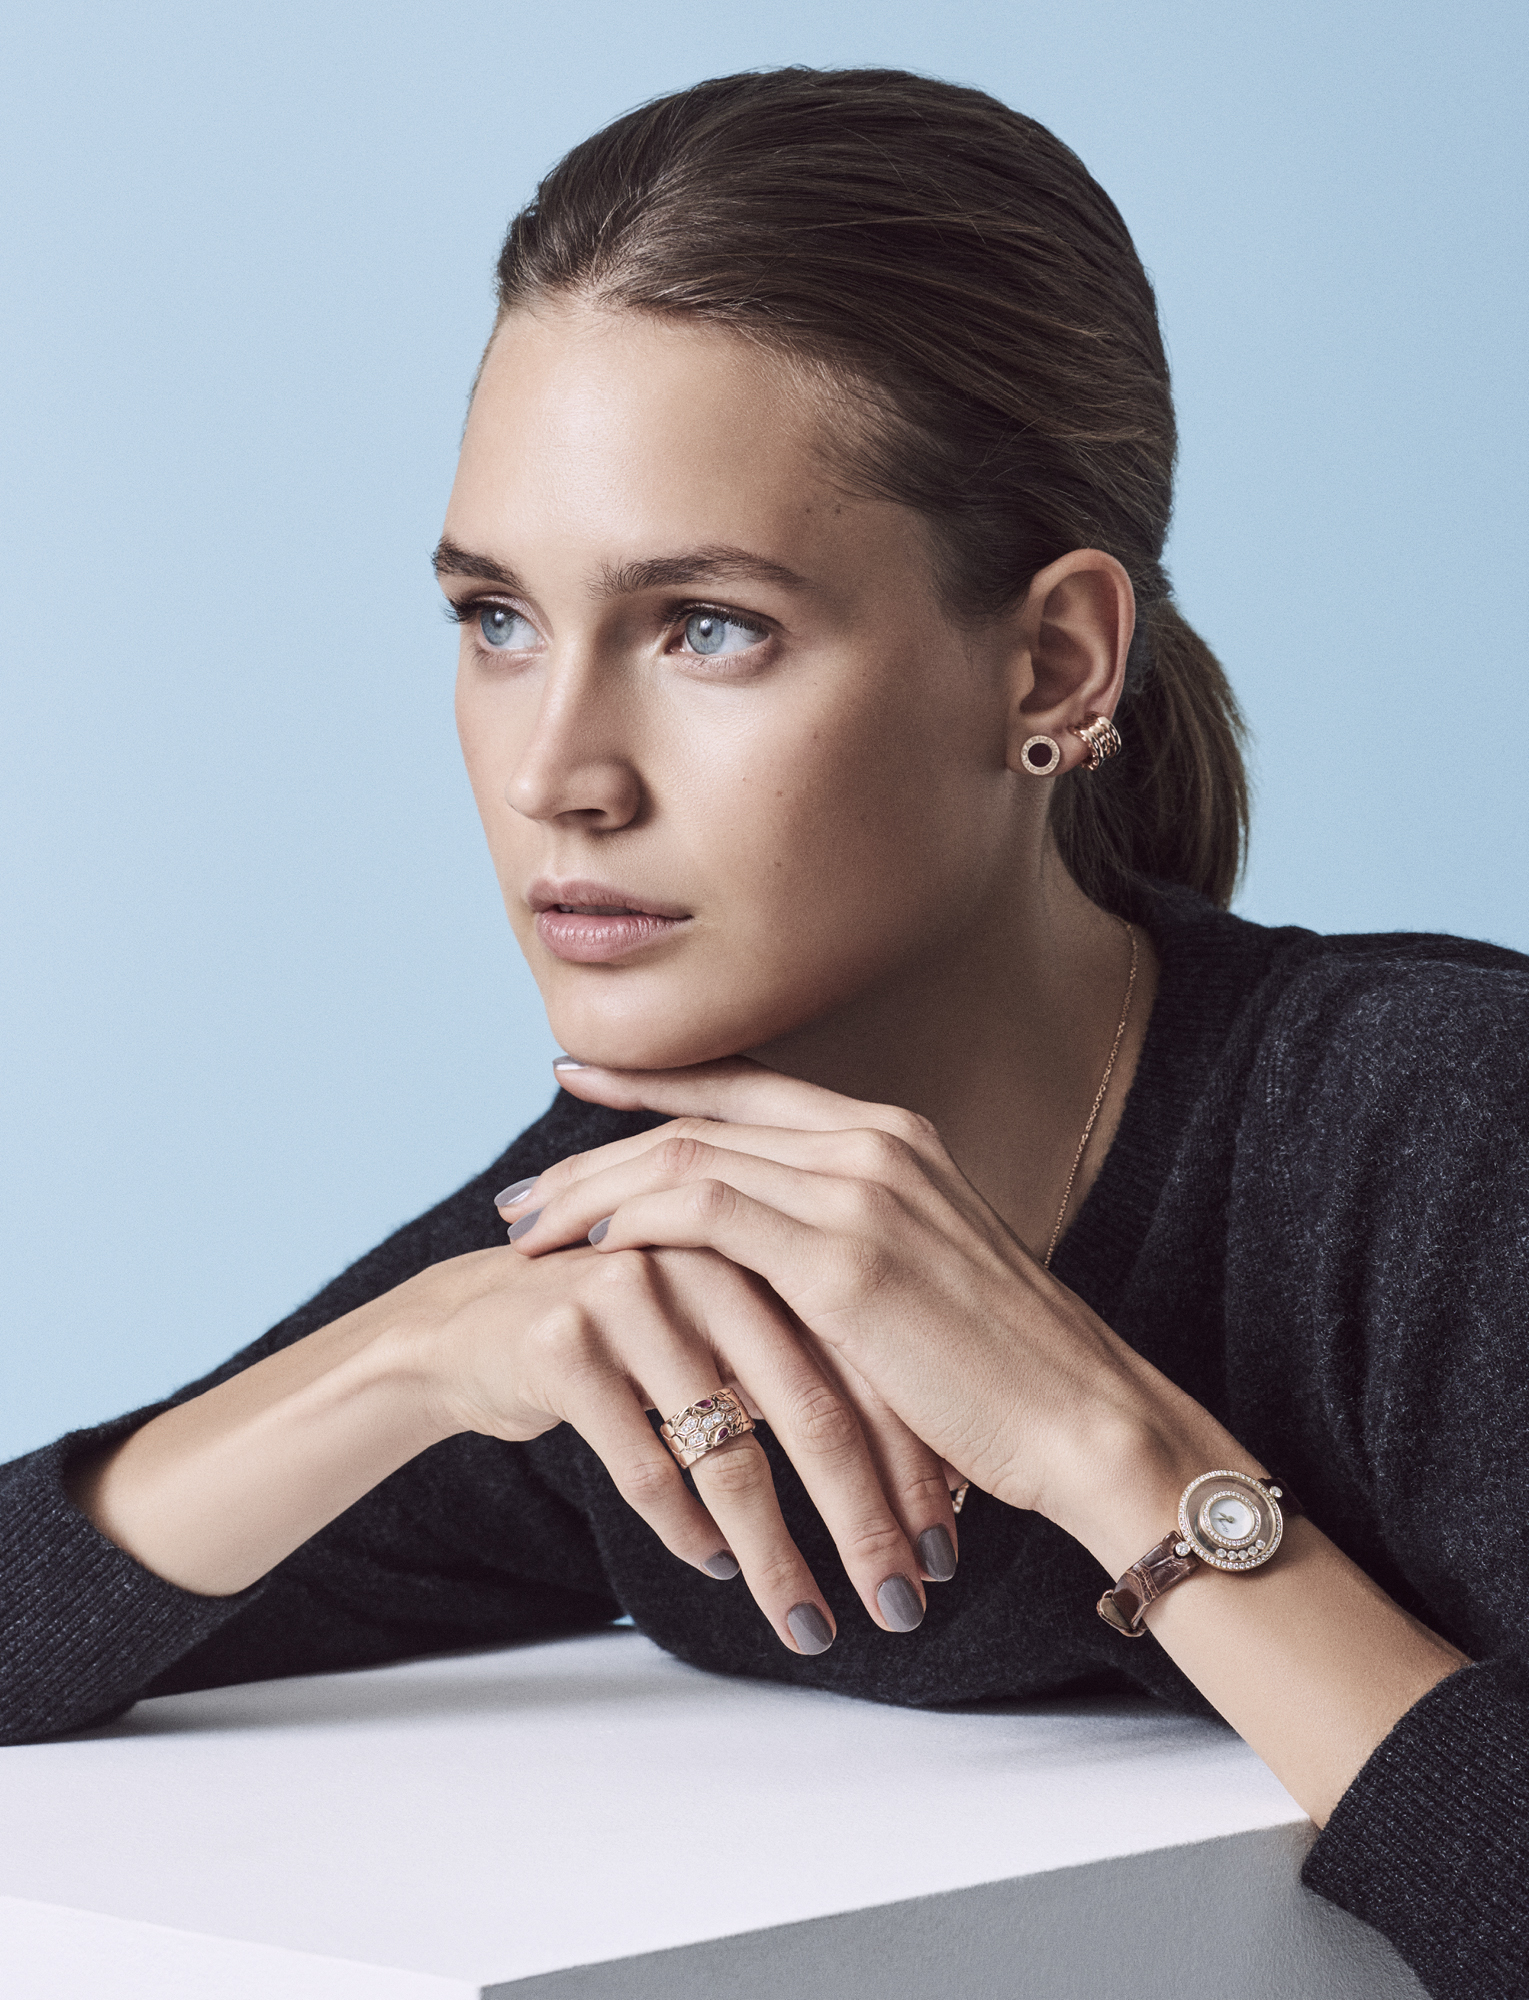 Lambswool sweatshirt, £180, SUNSPEL; ear cuff in 18ct rose gold, £1,180, single stud in 18ct rose gold, £690, and ring in 18ct rose gold, rubellite and pavé diamonds, £5,150, all BULGARI Happy Diamonds watch with dancing diamonds set in gold, on alligator strap, £11,800, CHOPARD